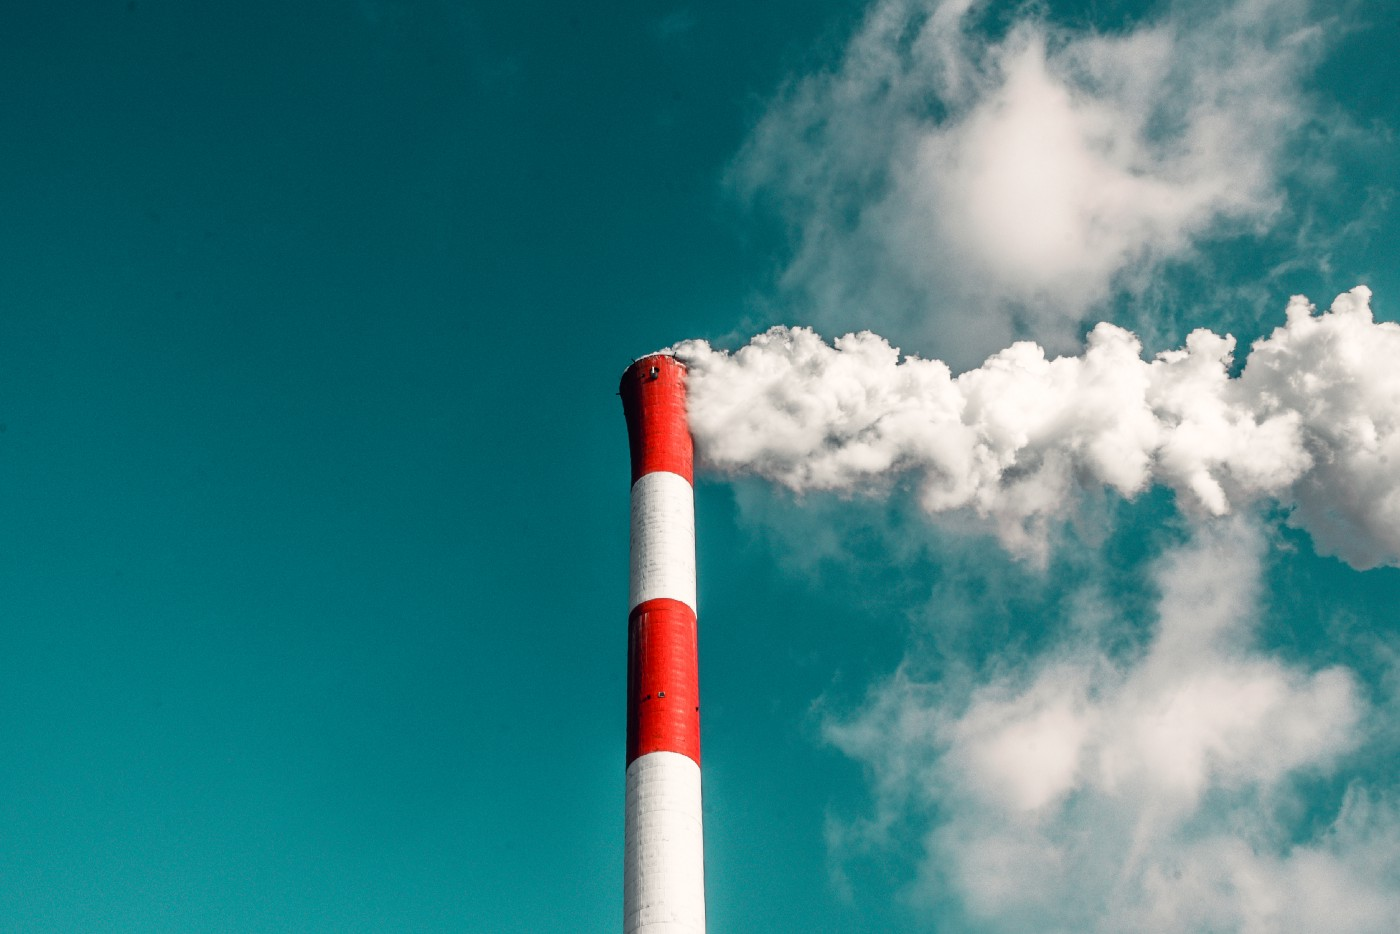 Image of an industrial chimney polluting the clear blue sky with its smoke.